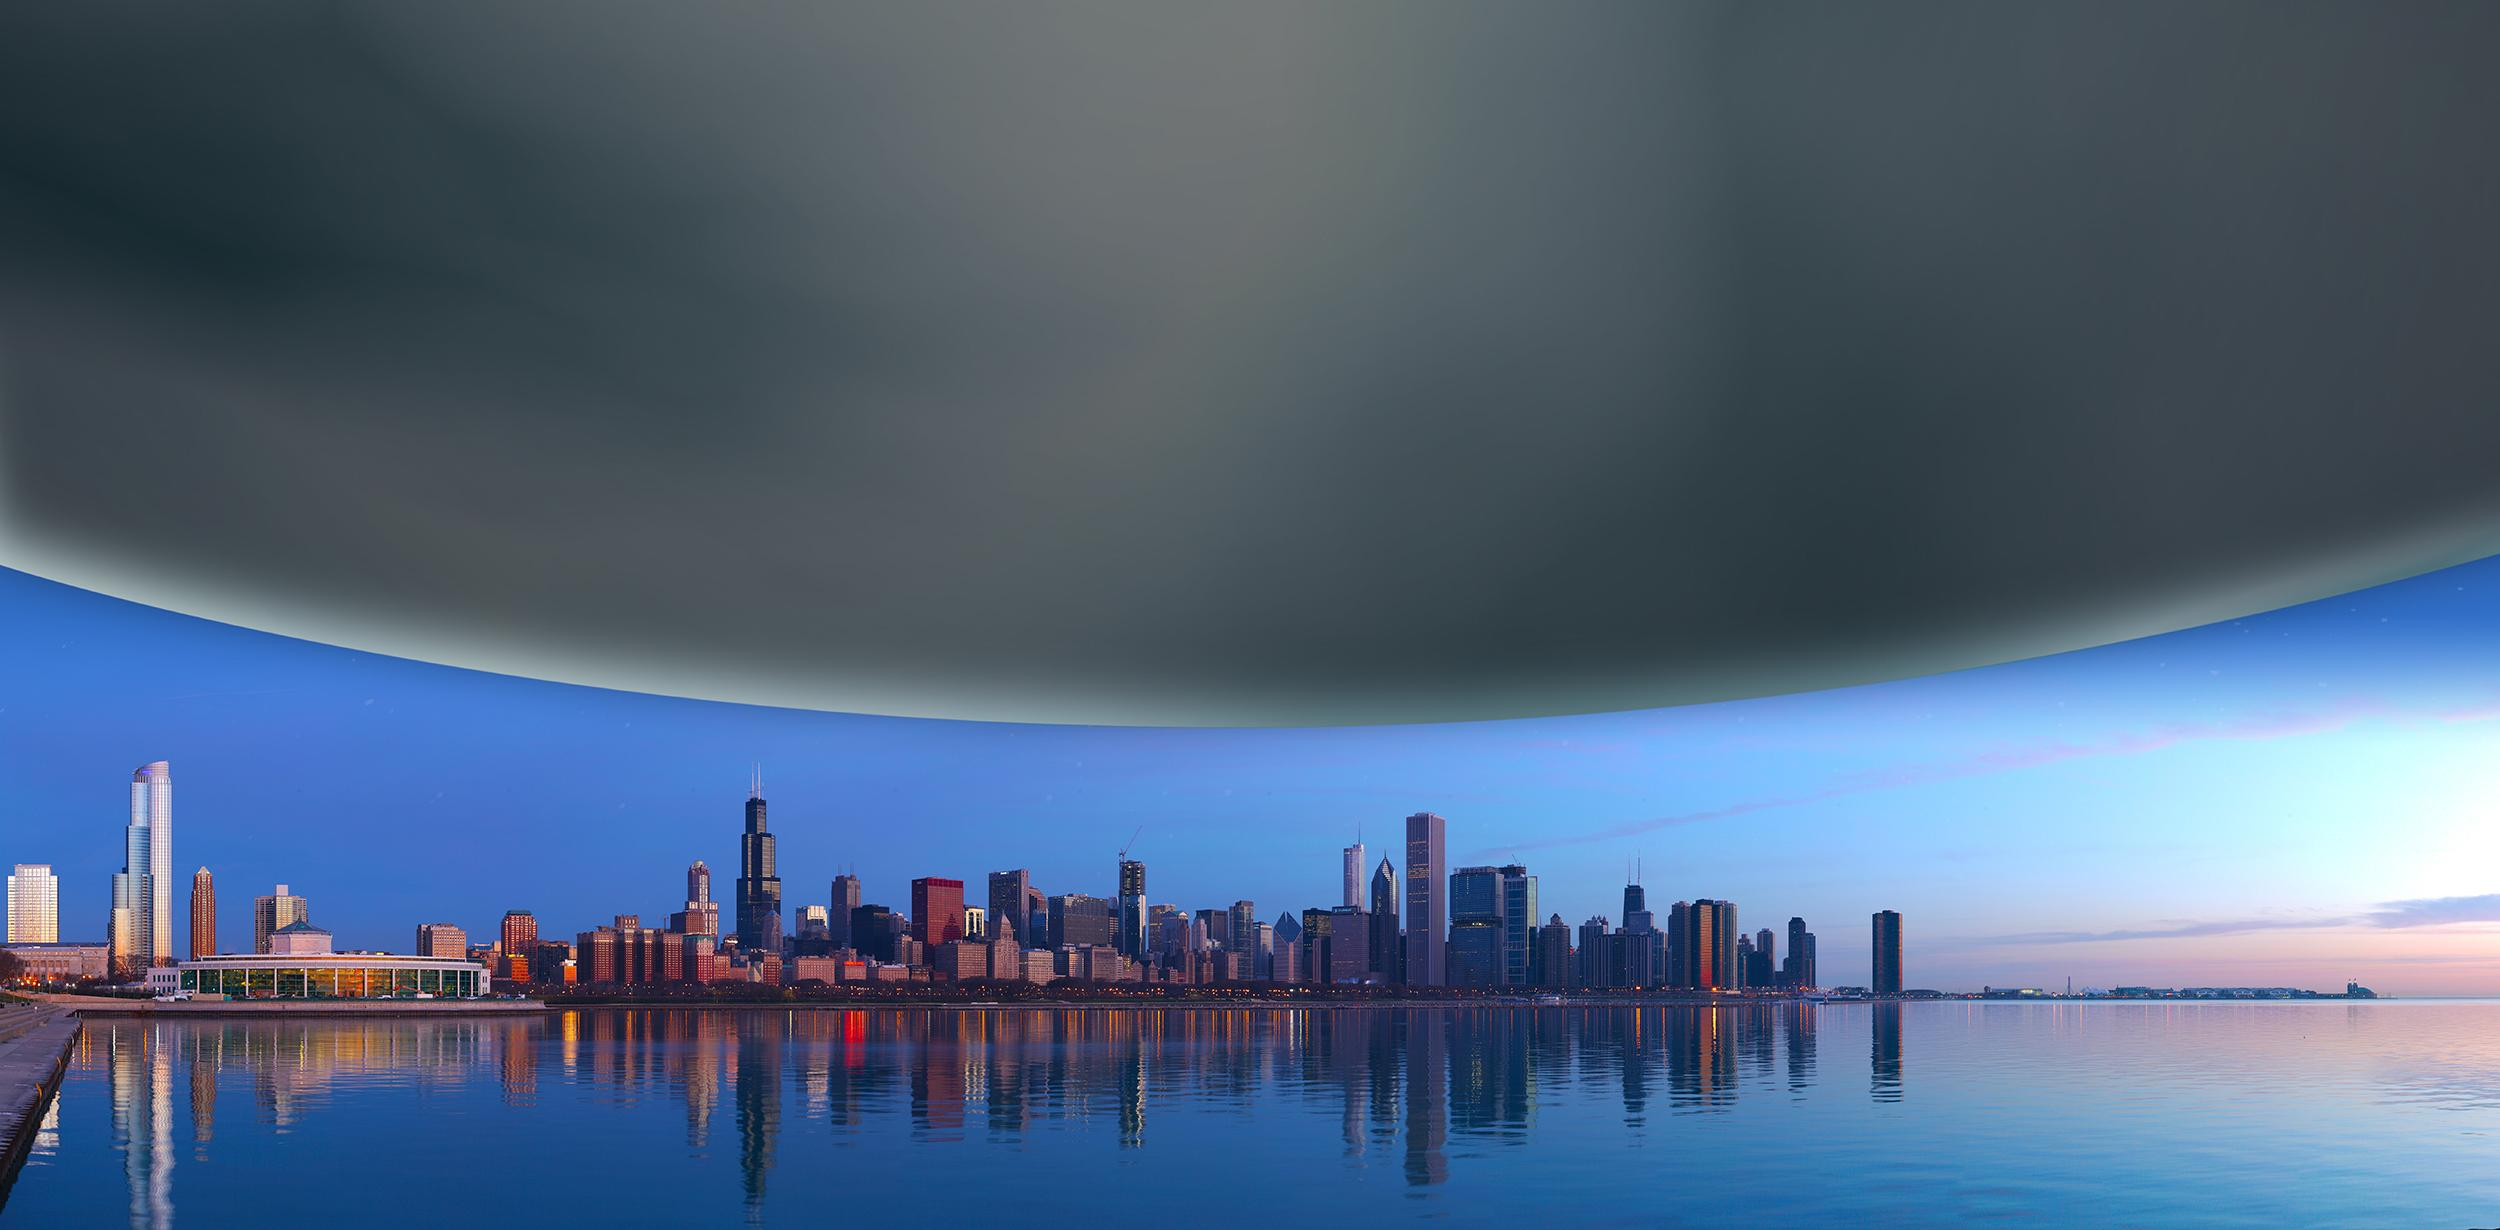 Neutron stars are incredibly incredibly dense, squeezing more than the mass of the sun into a sphere the size of a city. The diameter of a neutron star is about 12 miles, shown here scaled against the Chicago skyline for comparison. (LIGO-Virgo/Daniel Schwen/Northwestern)